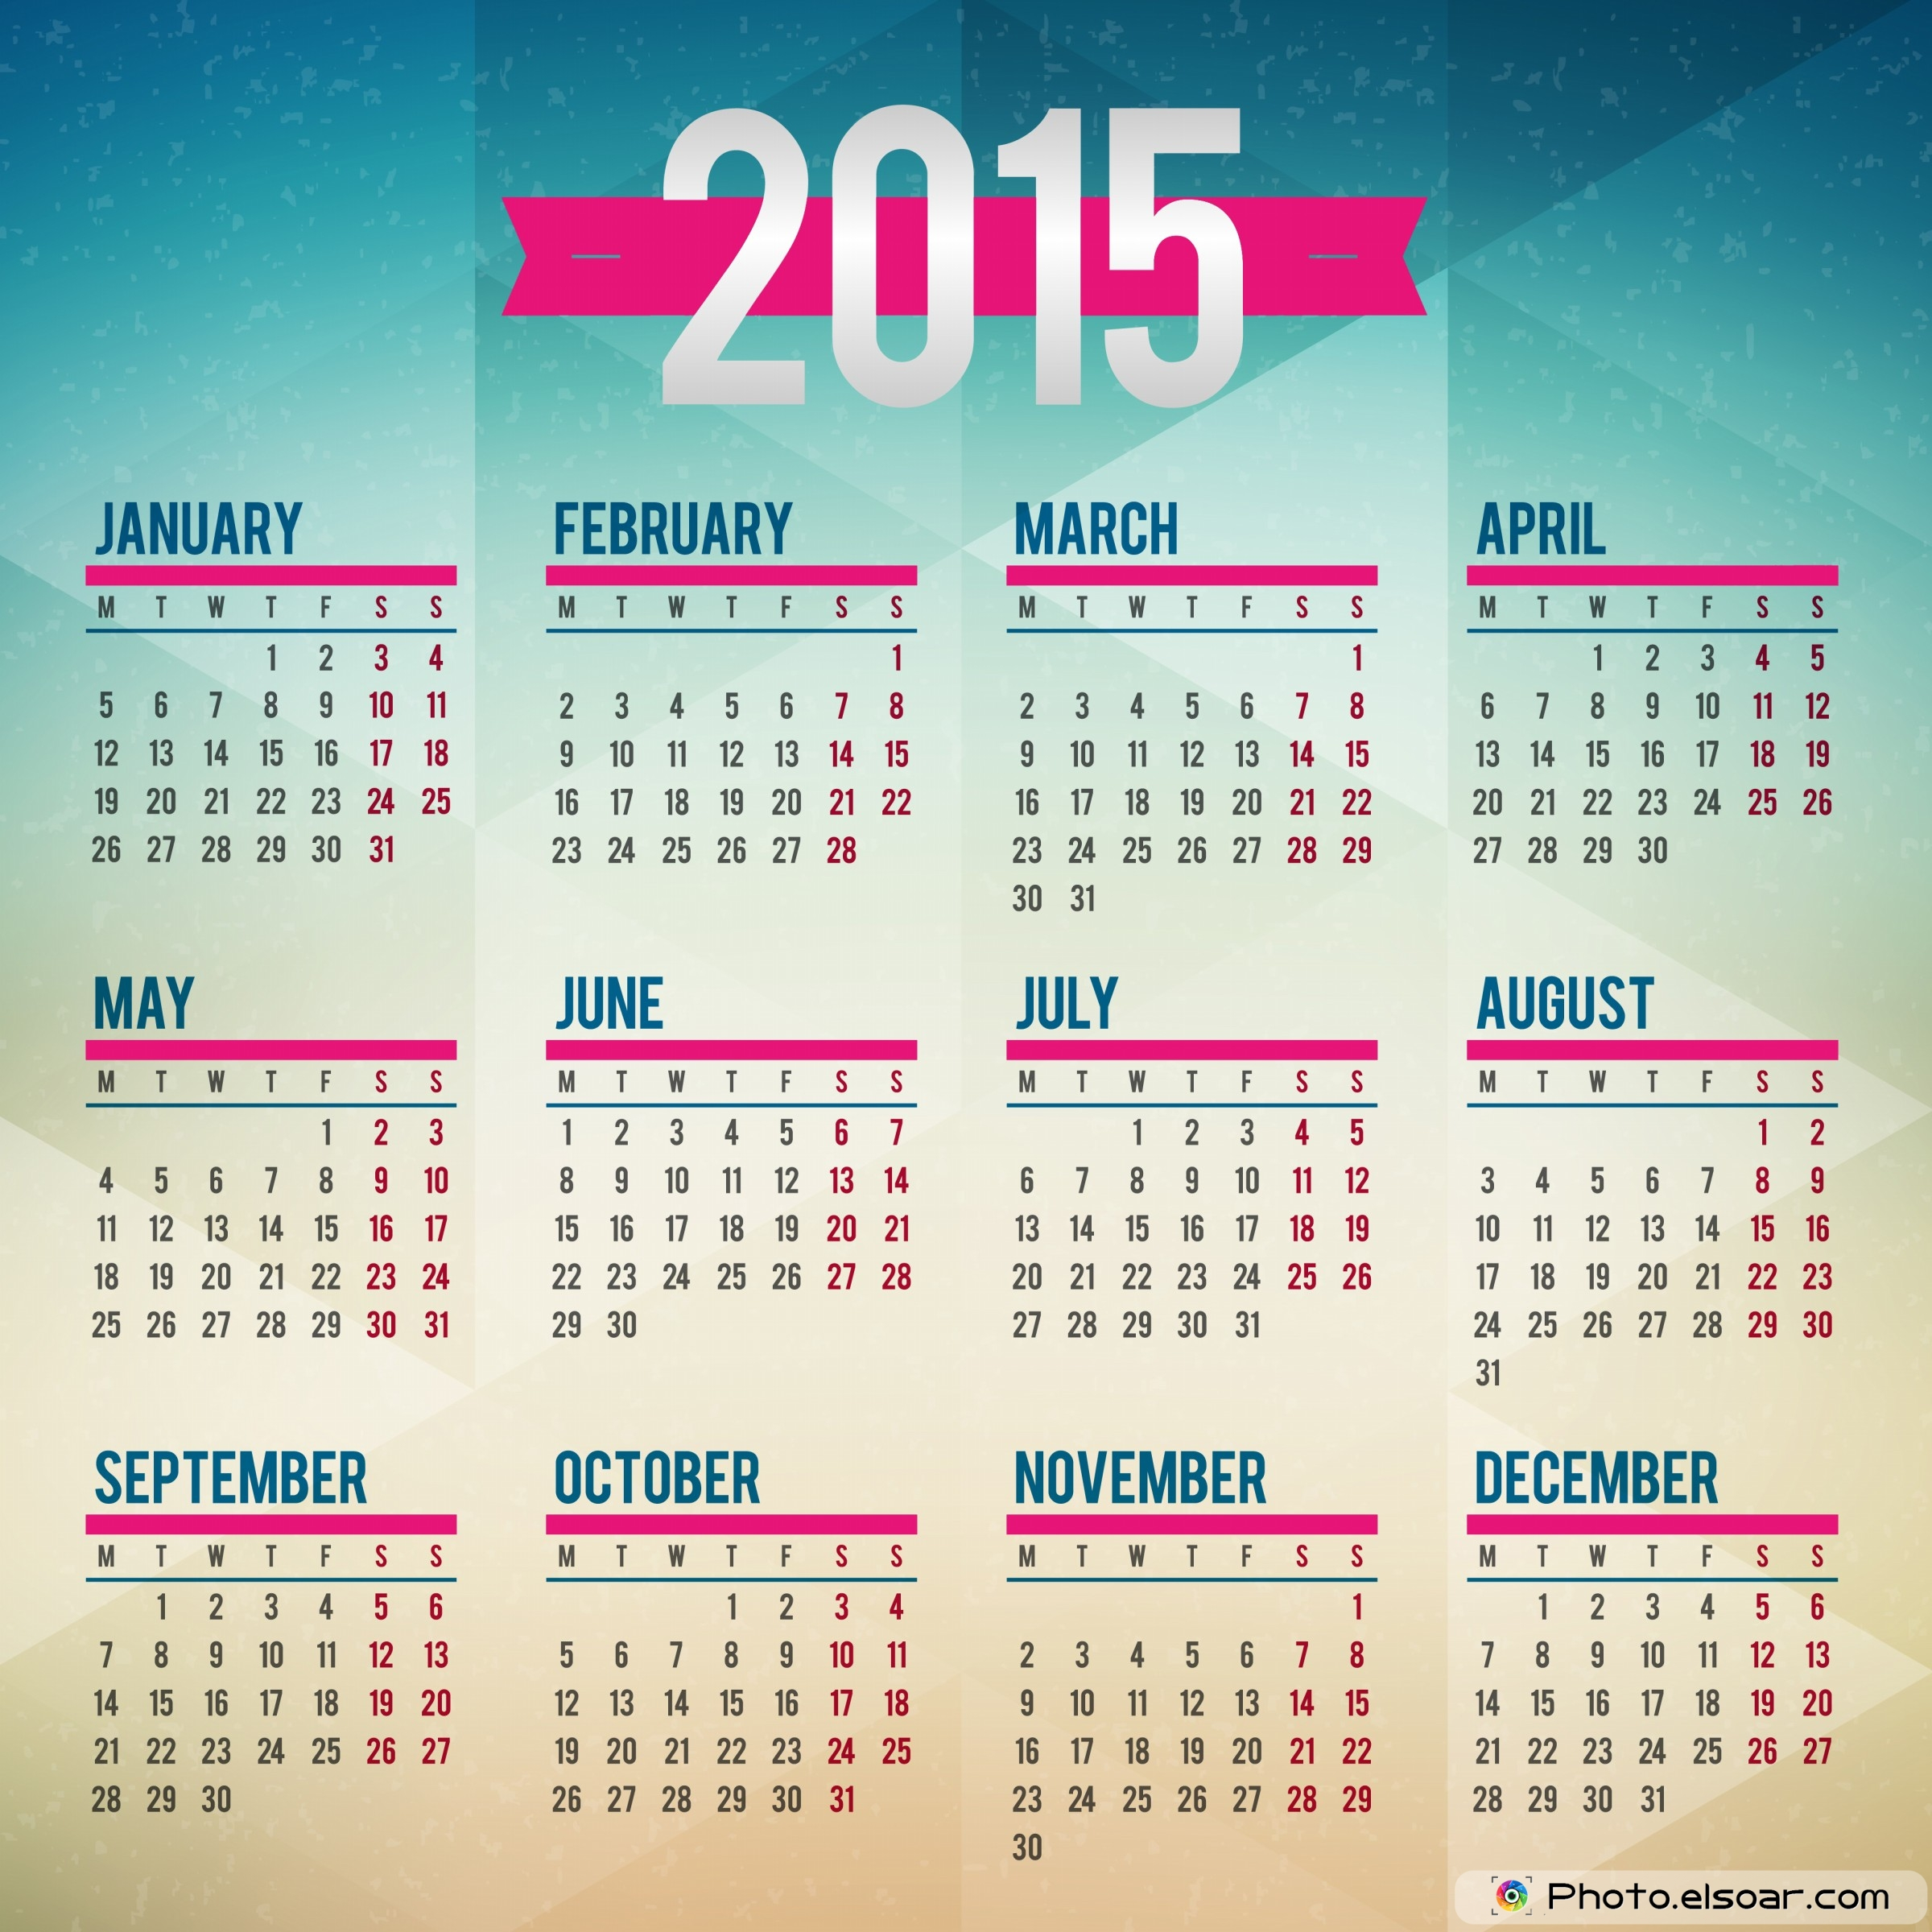 Calendar Design With Pictures : Printable monthly calendar designs images